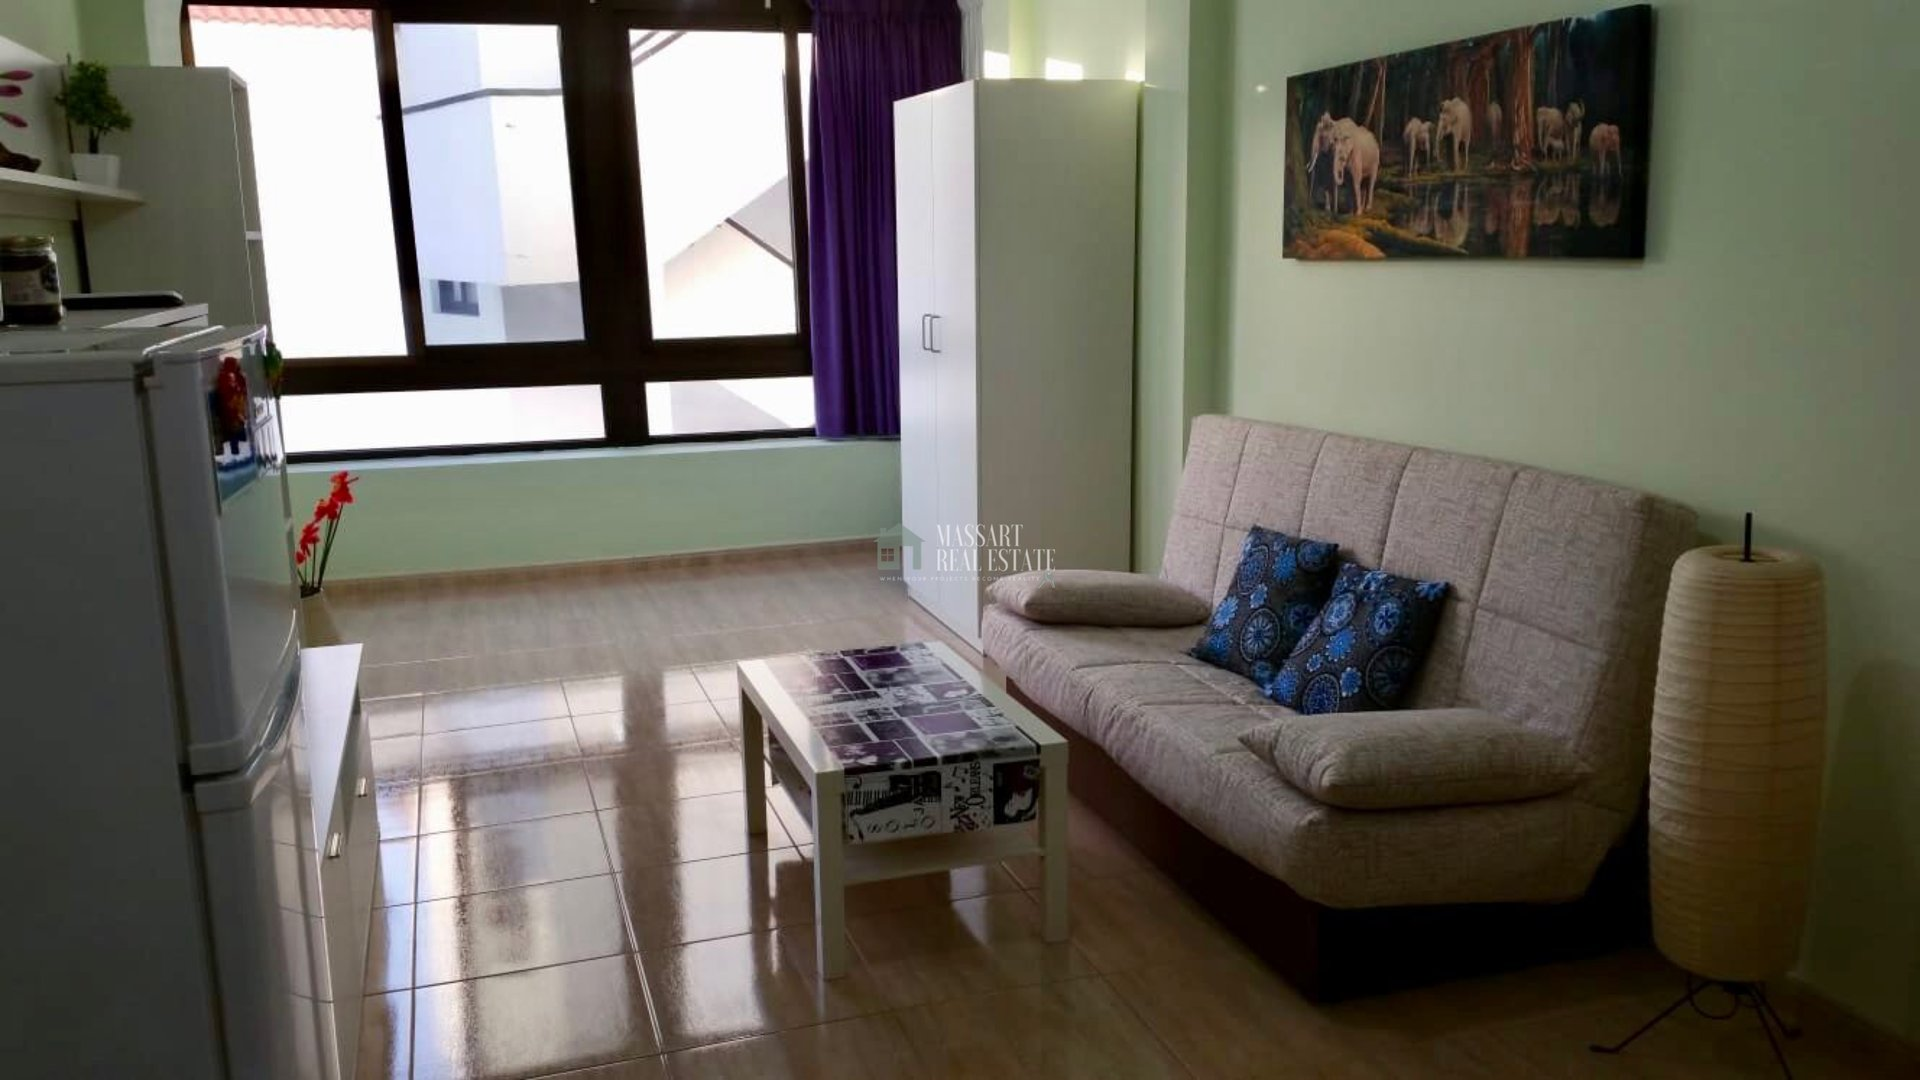 Functional apartment of 55 m2 furnished with top quality furniture.